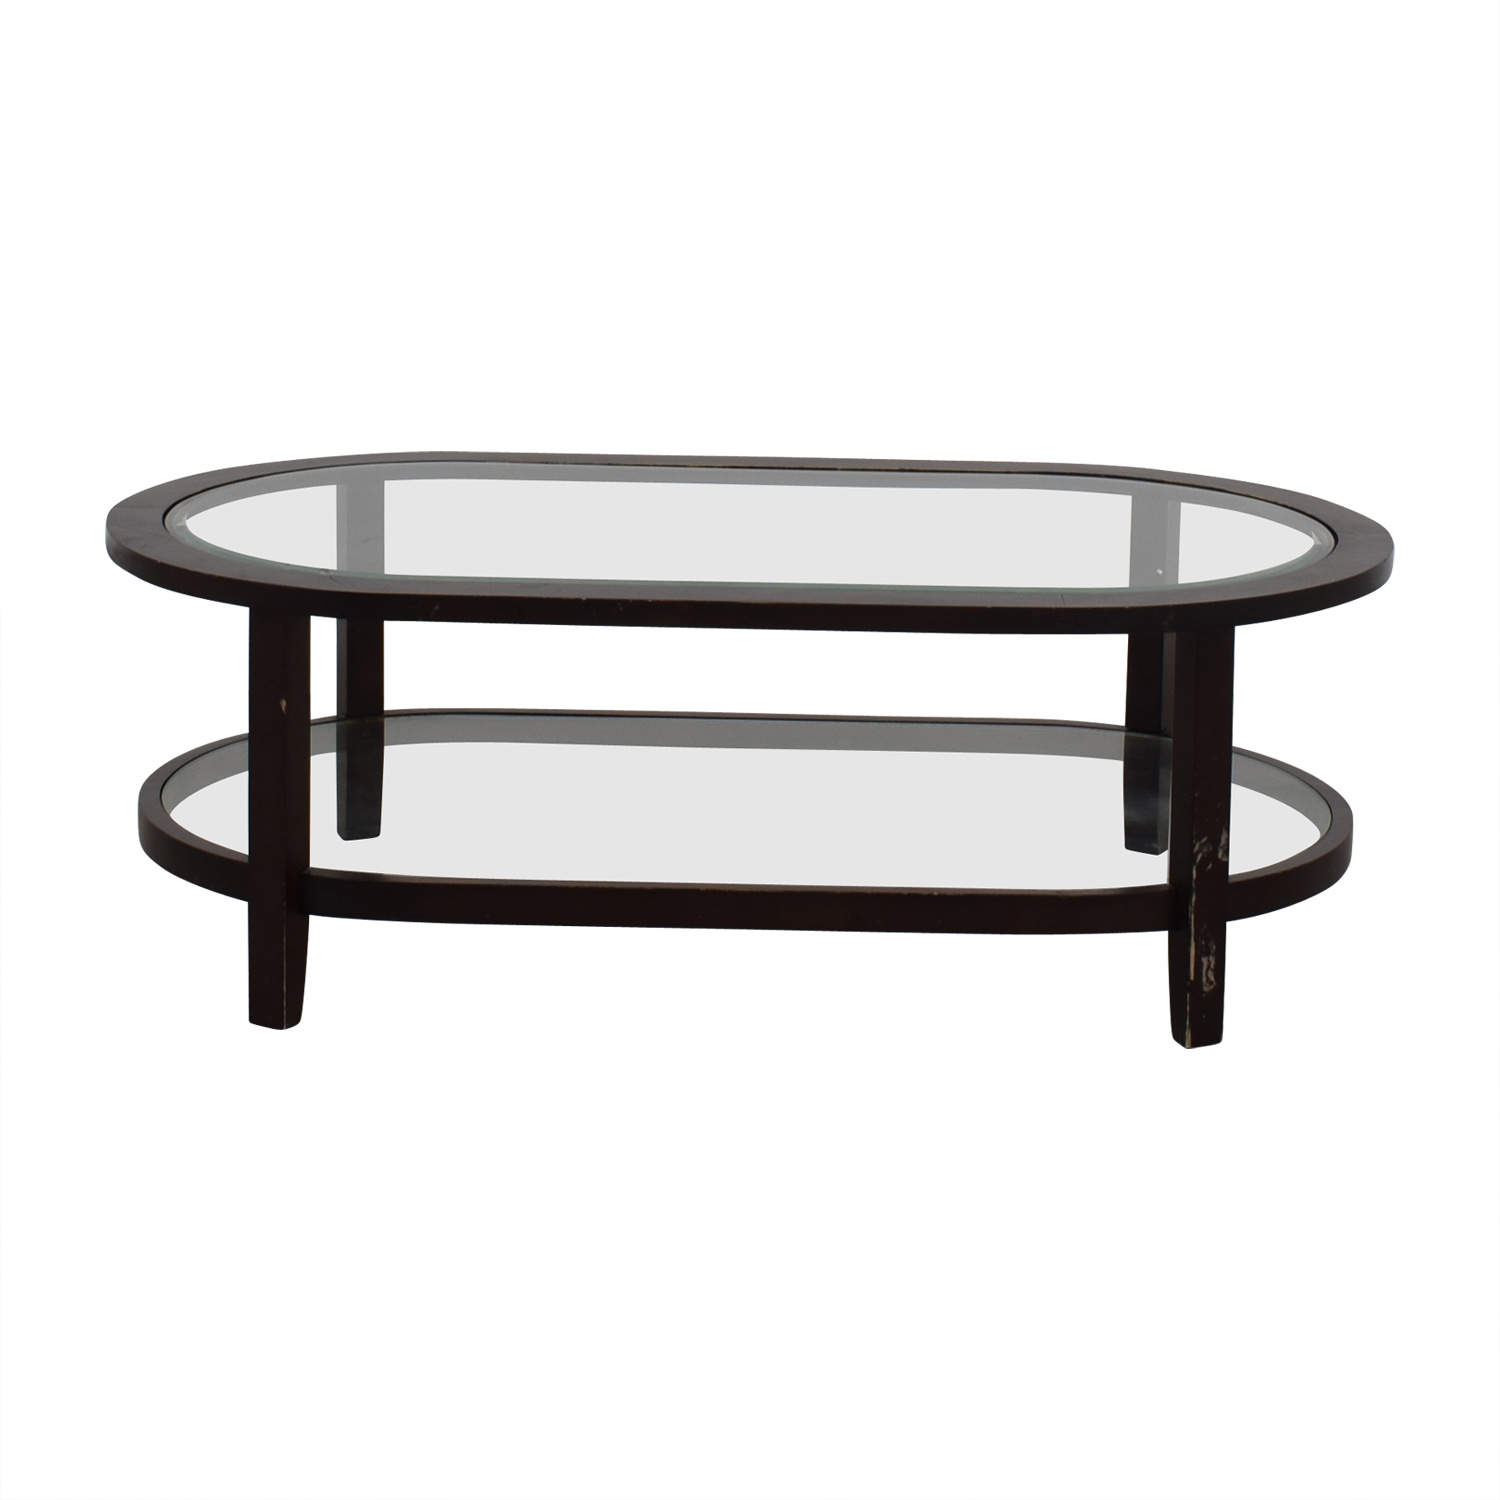 Crate And Barrel Black Marble Coffee Table: Coffee Tables: Used Coffee Tables For Sale